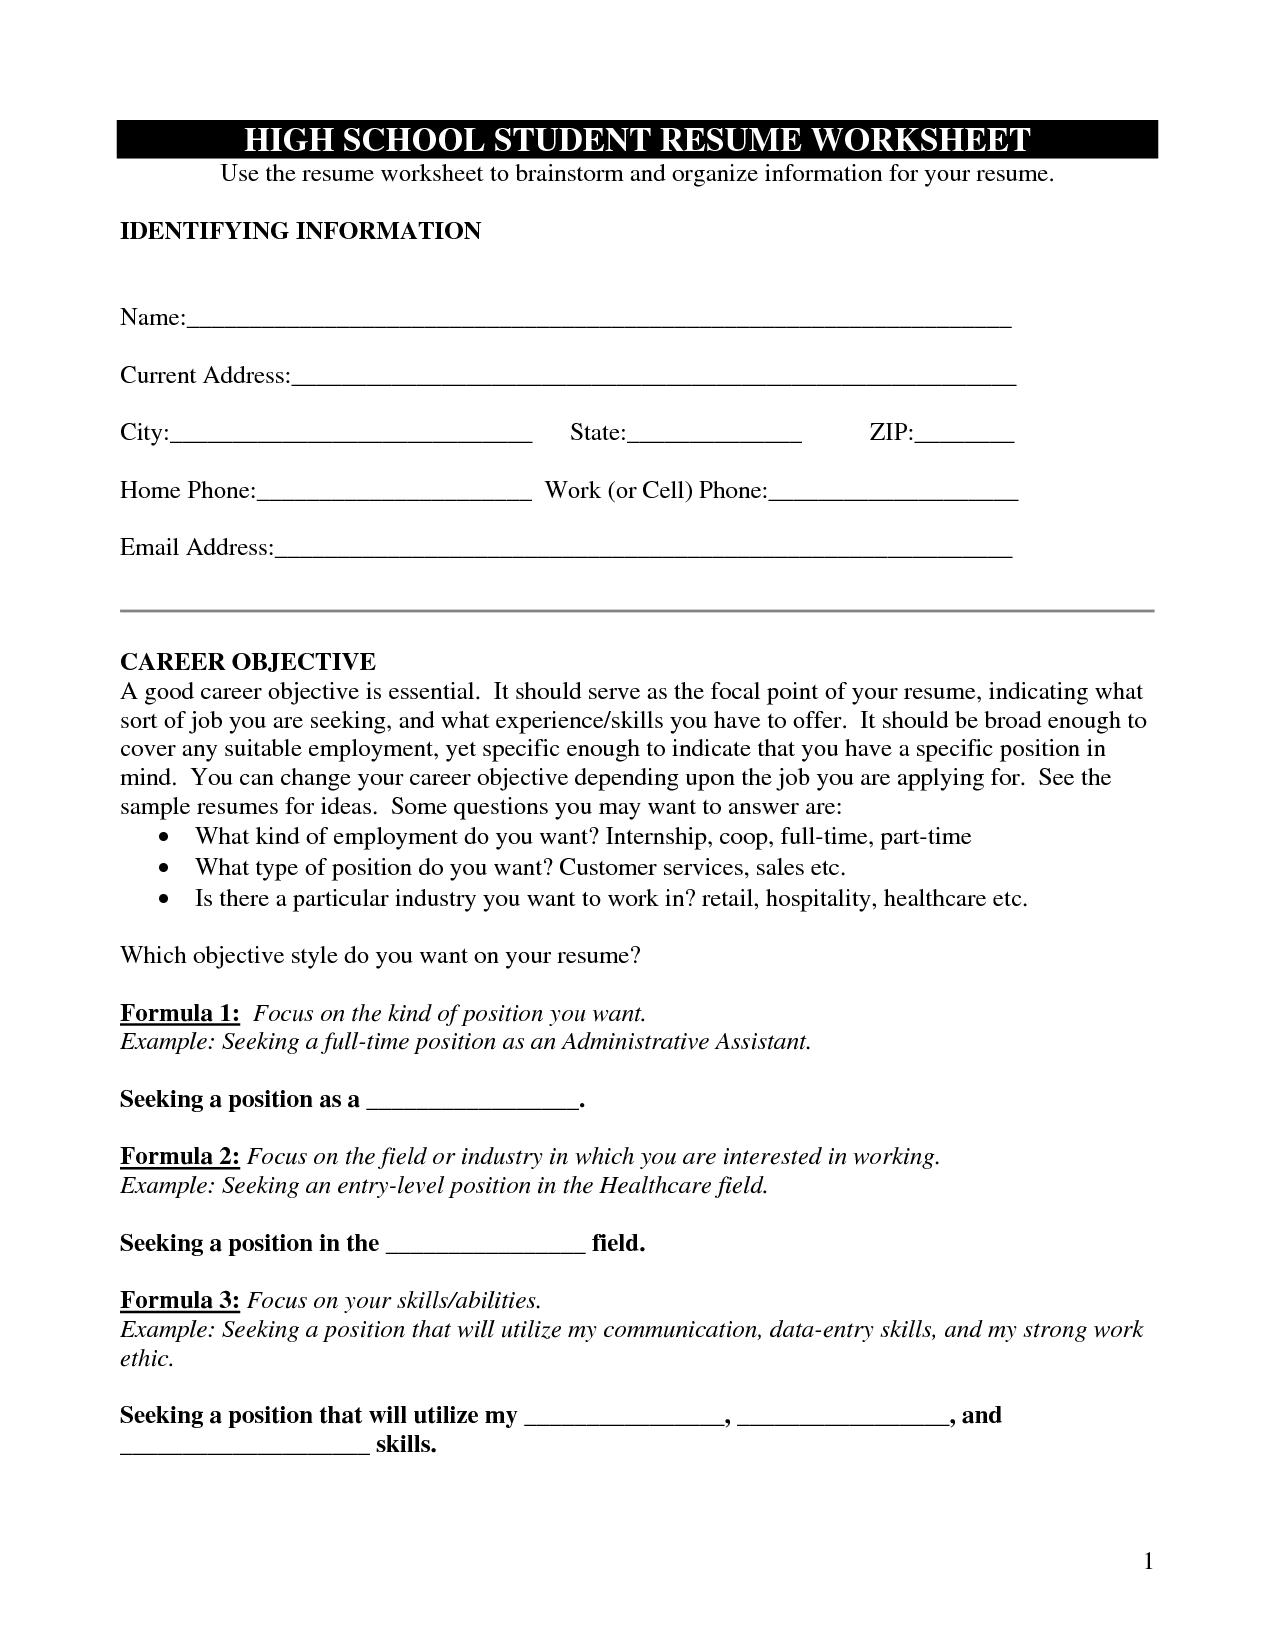 19 Best Images Of High School Student Information Worksheet